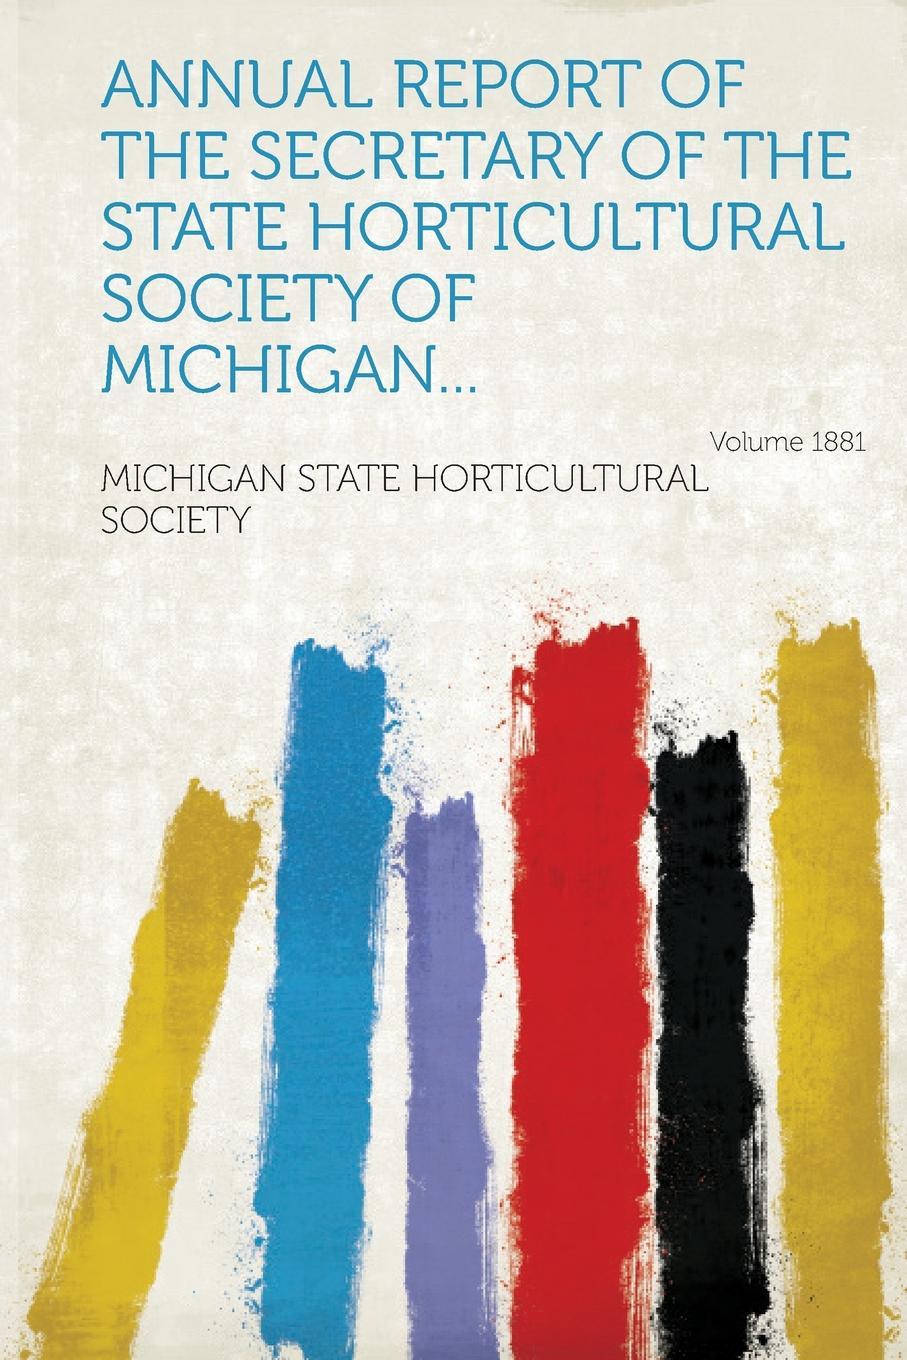 Michigan State Horticultural Society Annual report of the secretary of the State Horticultural Society of Michigan... Year 1881